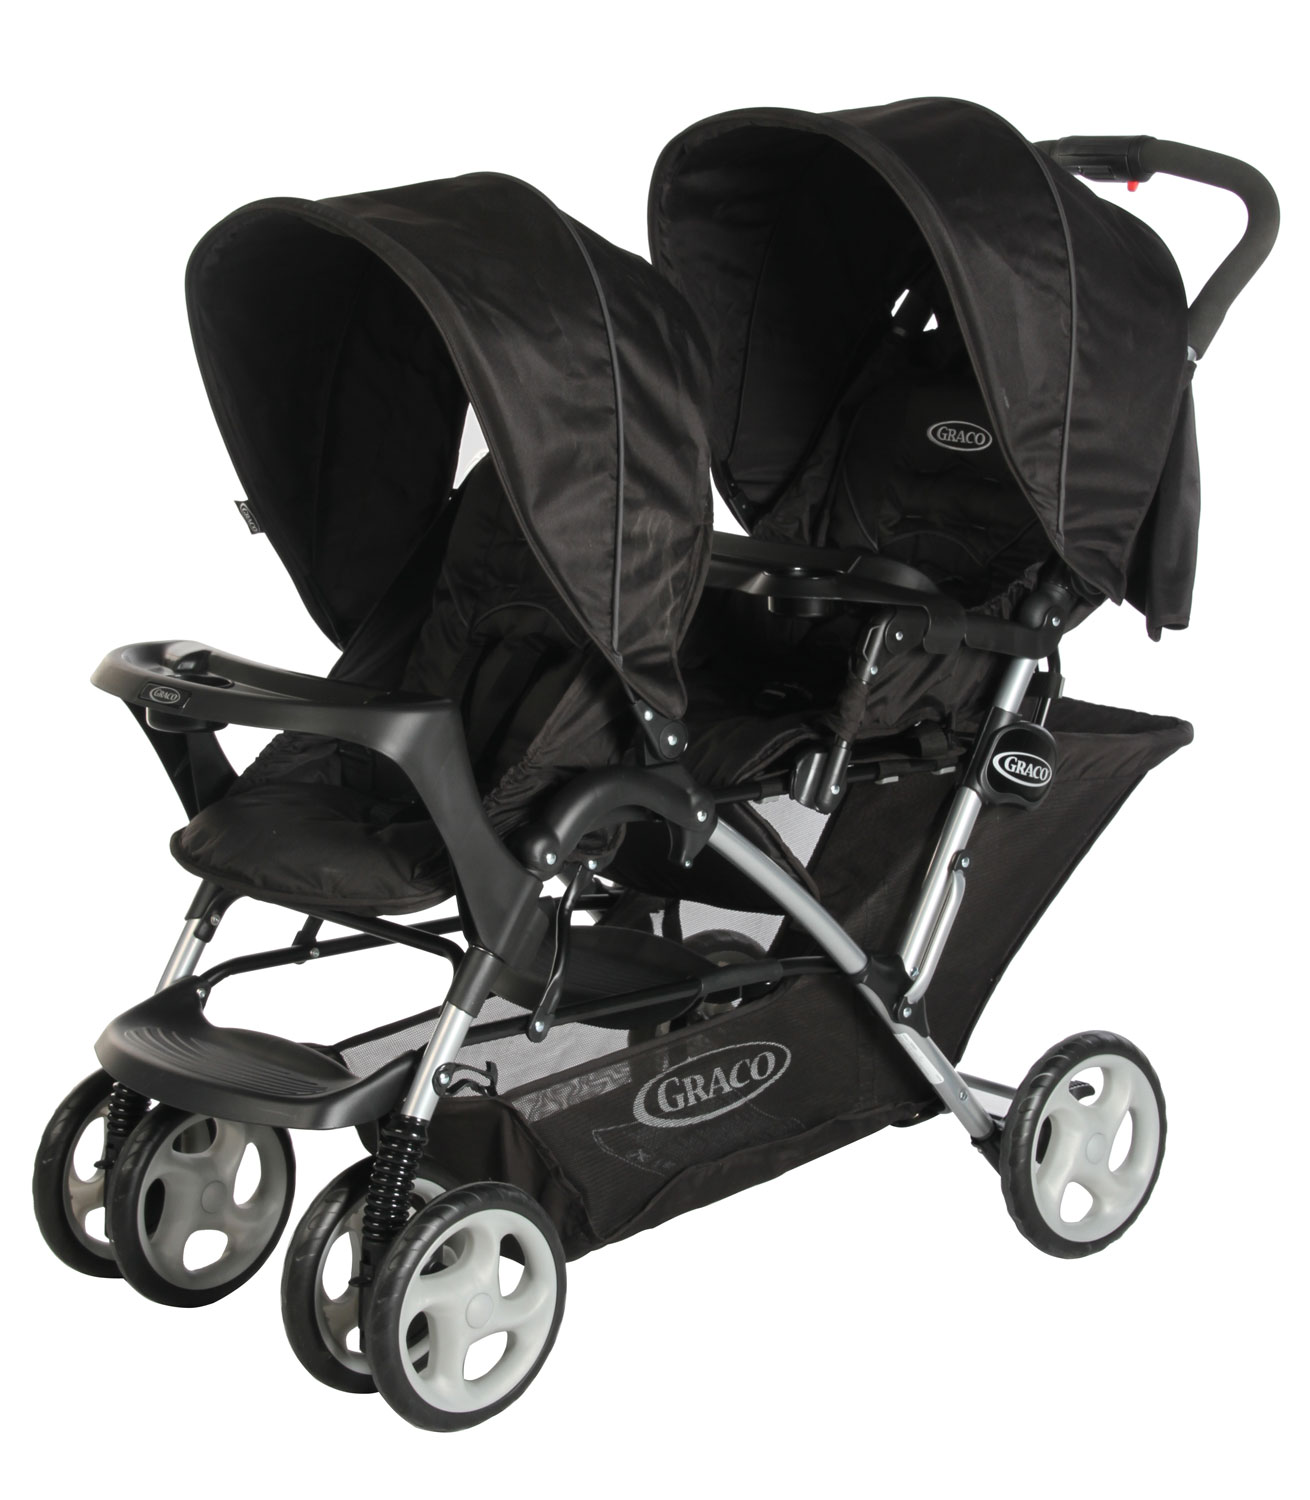 Graco – Graco - stadium duo sport luxe, +10 stk. på lager på pixizoo